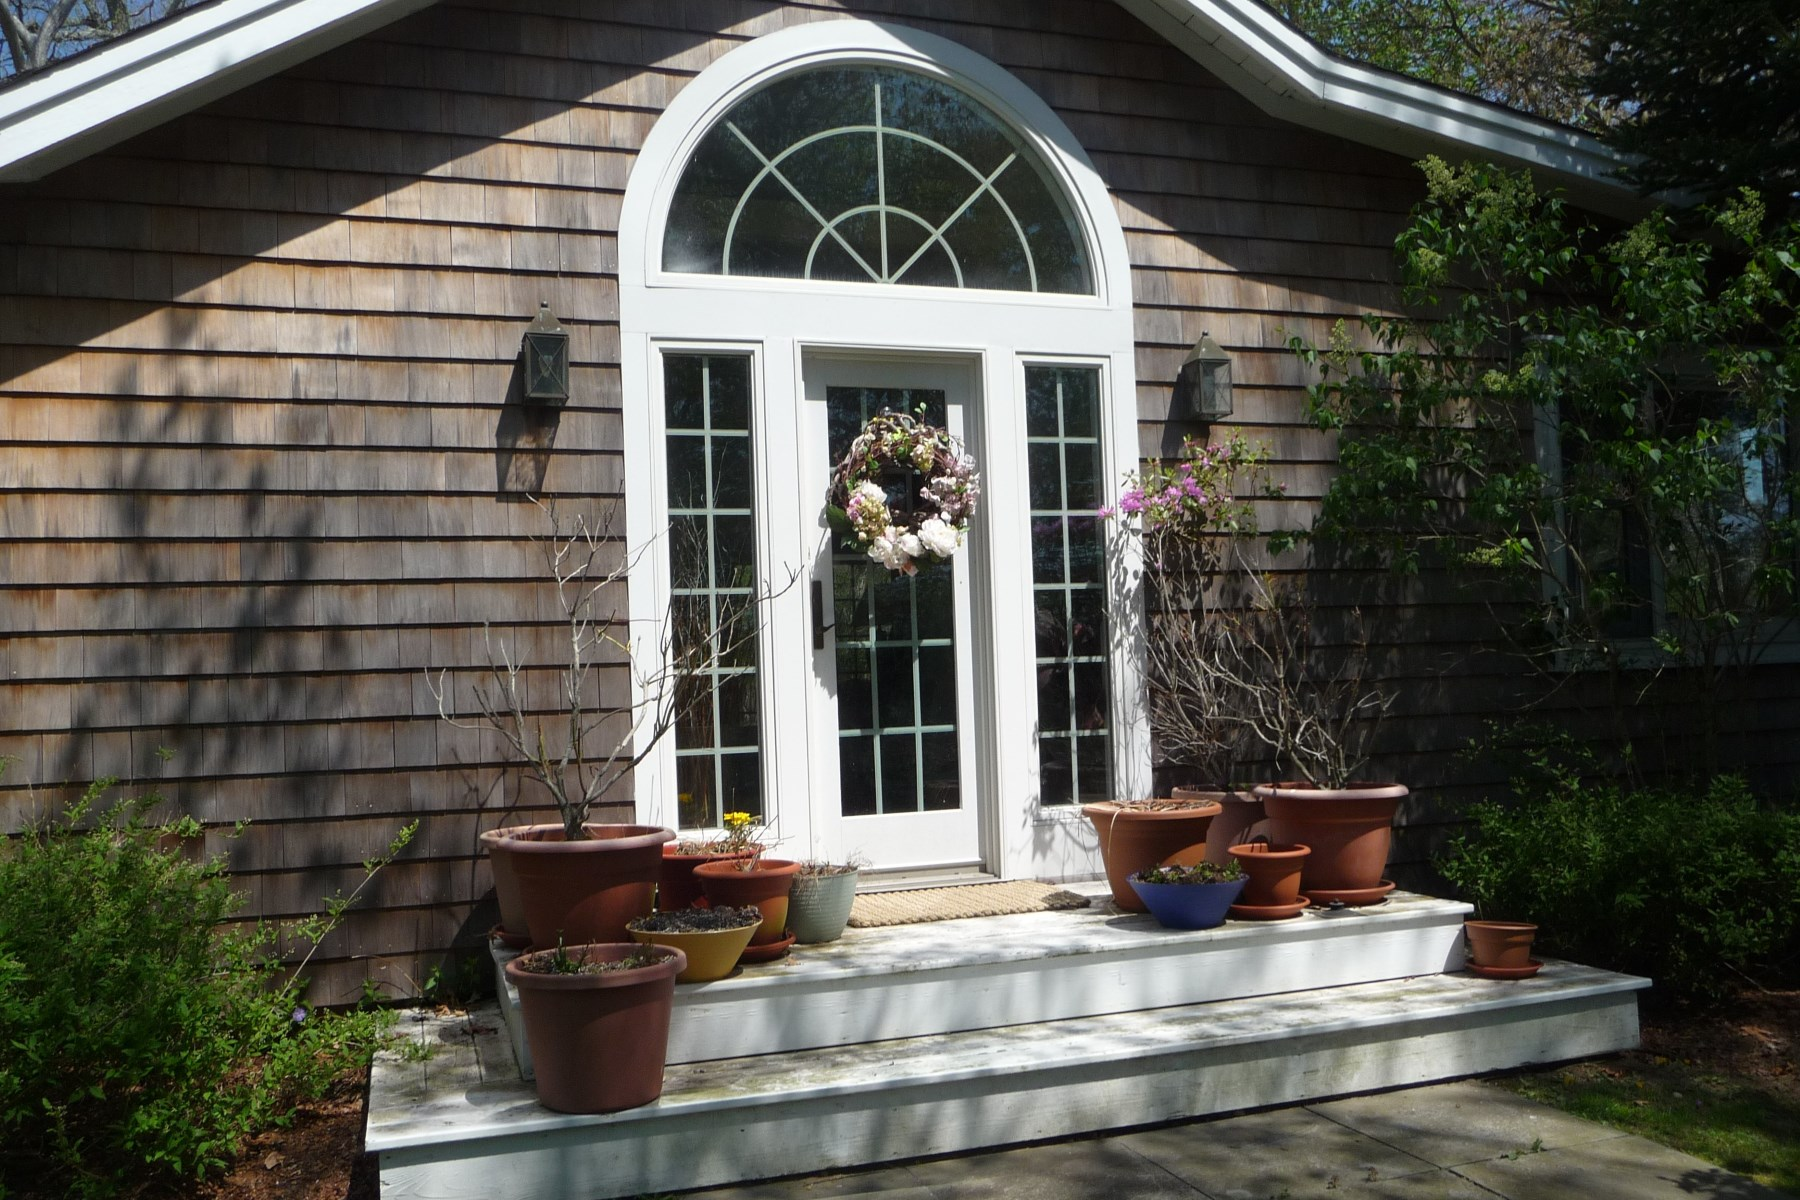 Single Family Home for Rent at Cottage on Quiet Street 21 Whitfield Road Southampton, New York 11968 United States